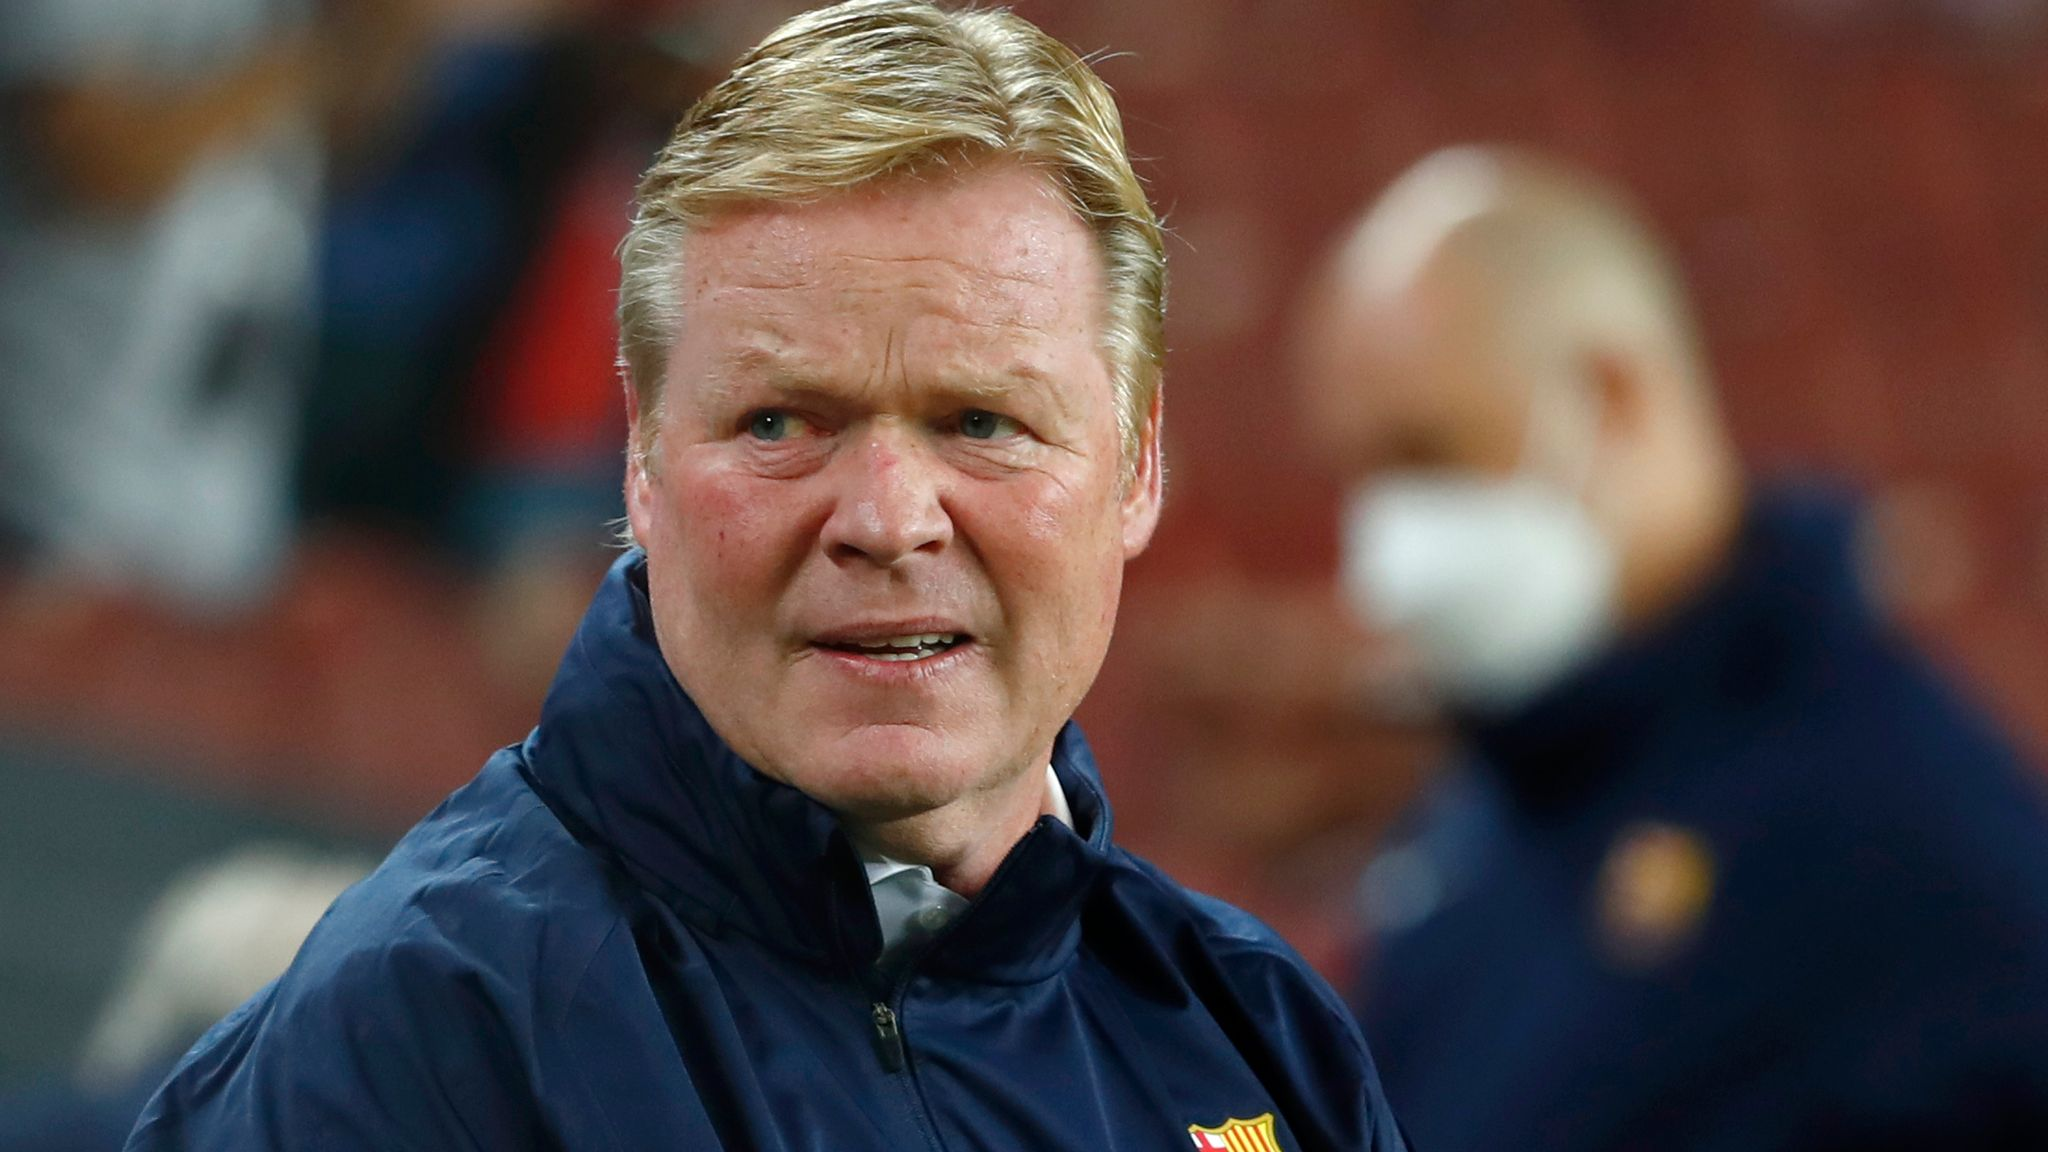 Ronald Koeman: Under-pressure Barcelona boss calls for patience in brief news conference   Football News   Sky Sports